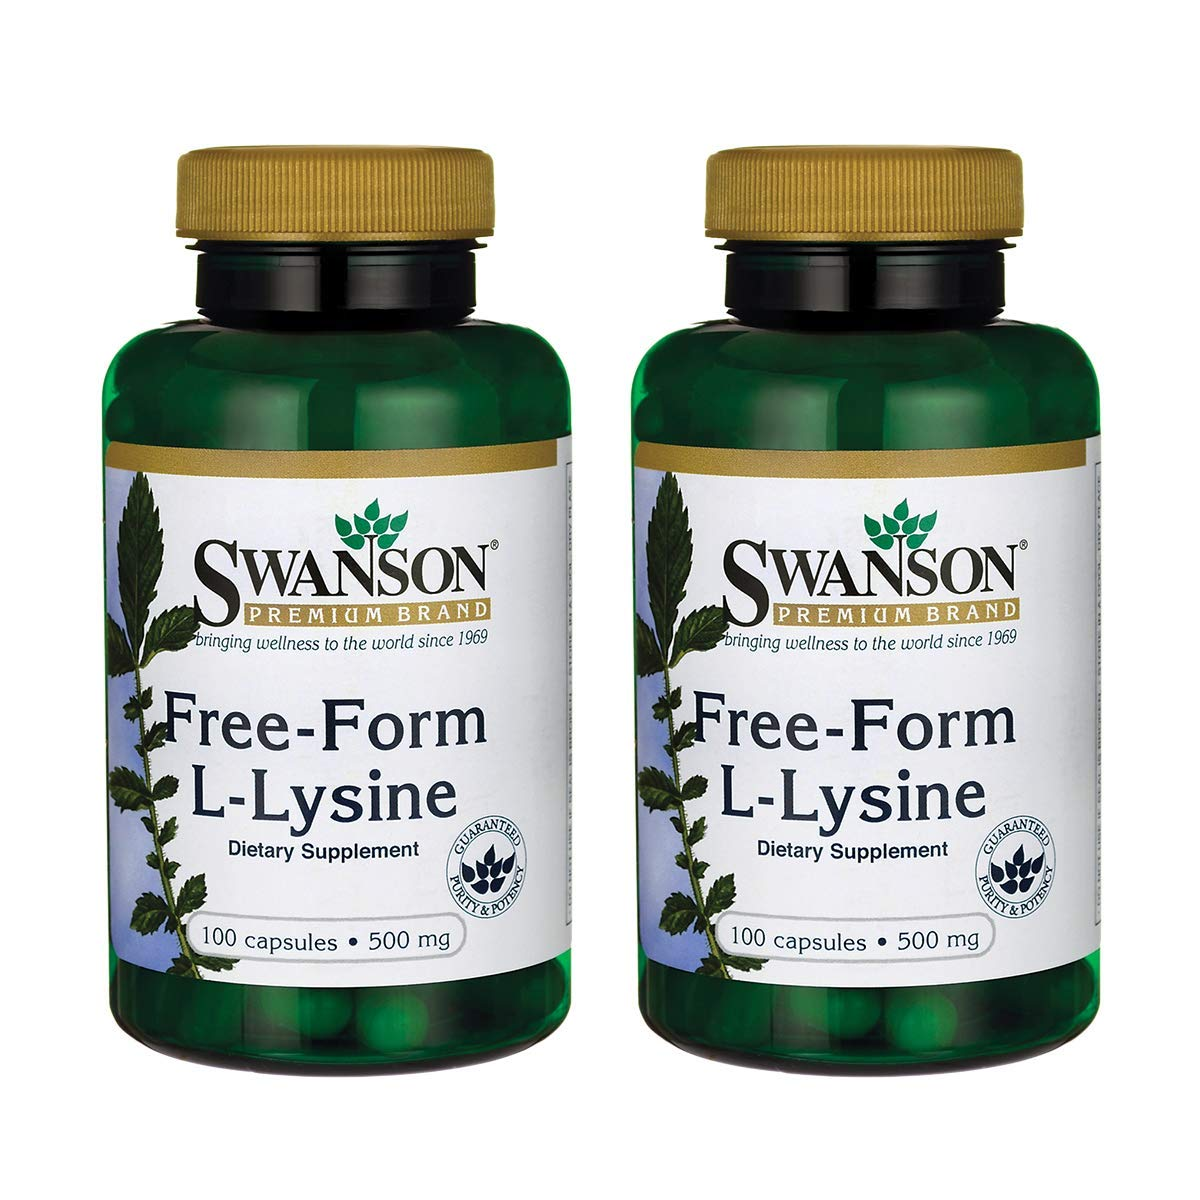 Swanson Amino Acid Free-Form L-Lysine 500 Milligrams 100 Capsules (2 Pack) by Swanson